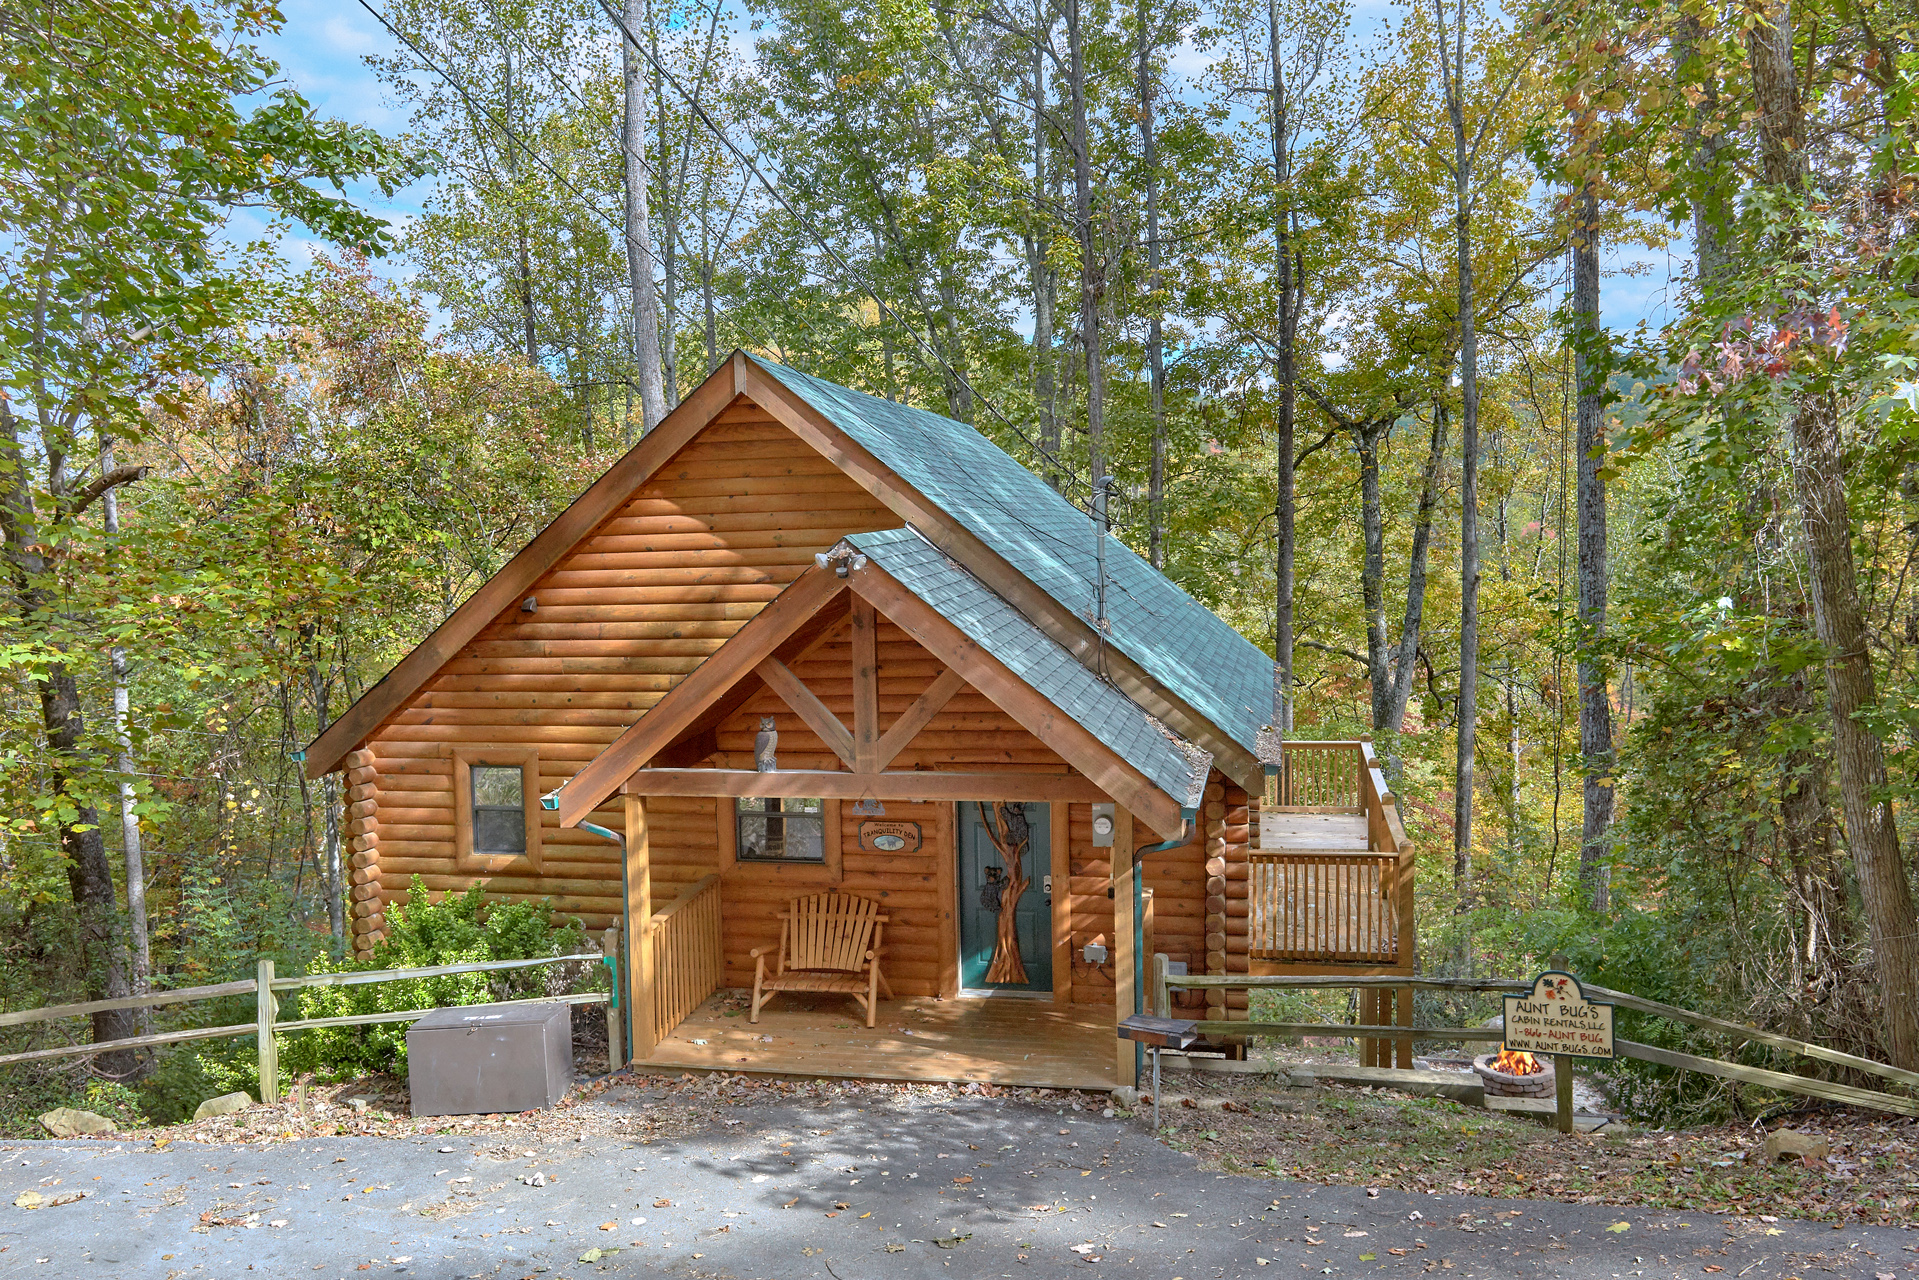 pigeon forge pin bedroom american cabin cabins rentals sleeps romance